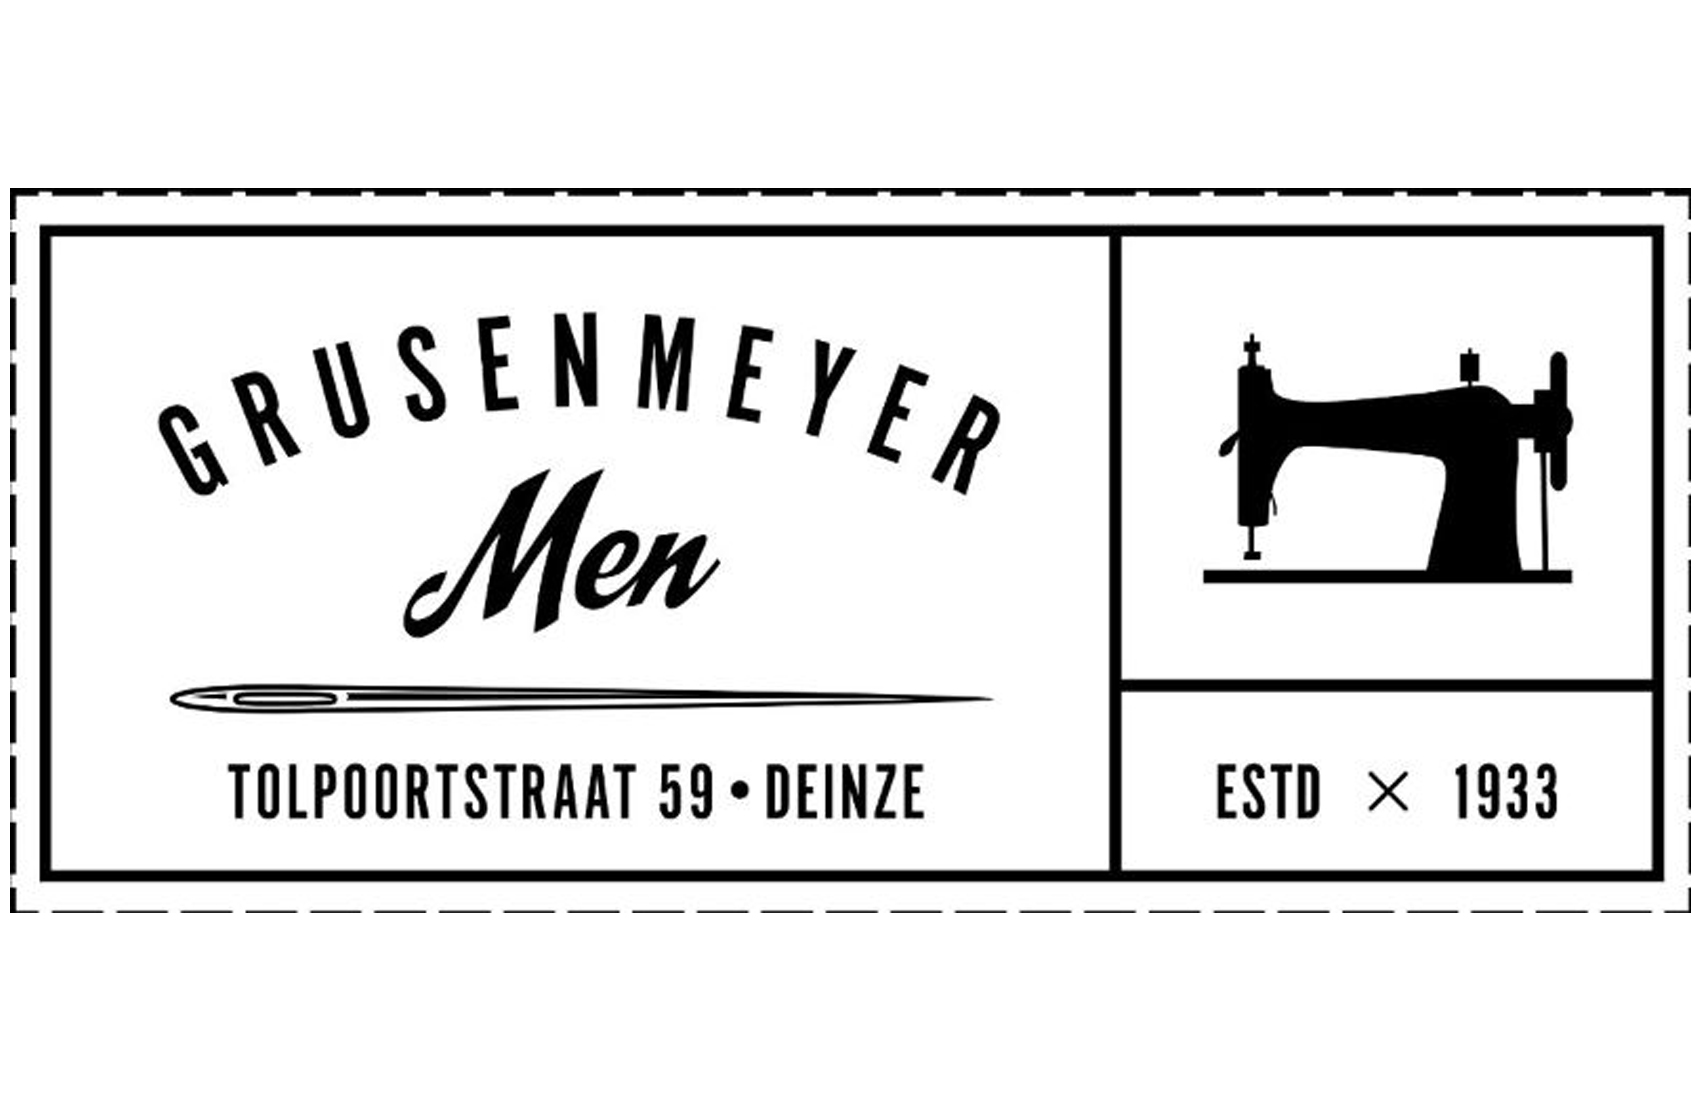 Grusenmeyer men